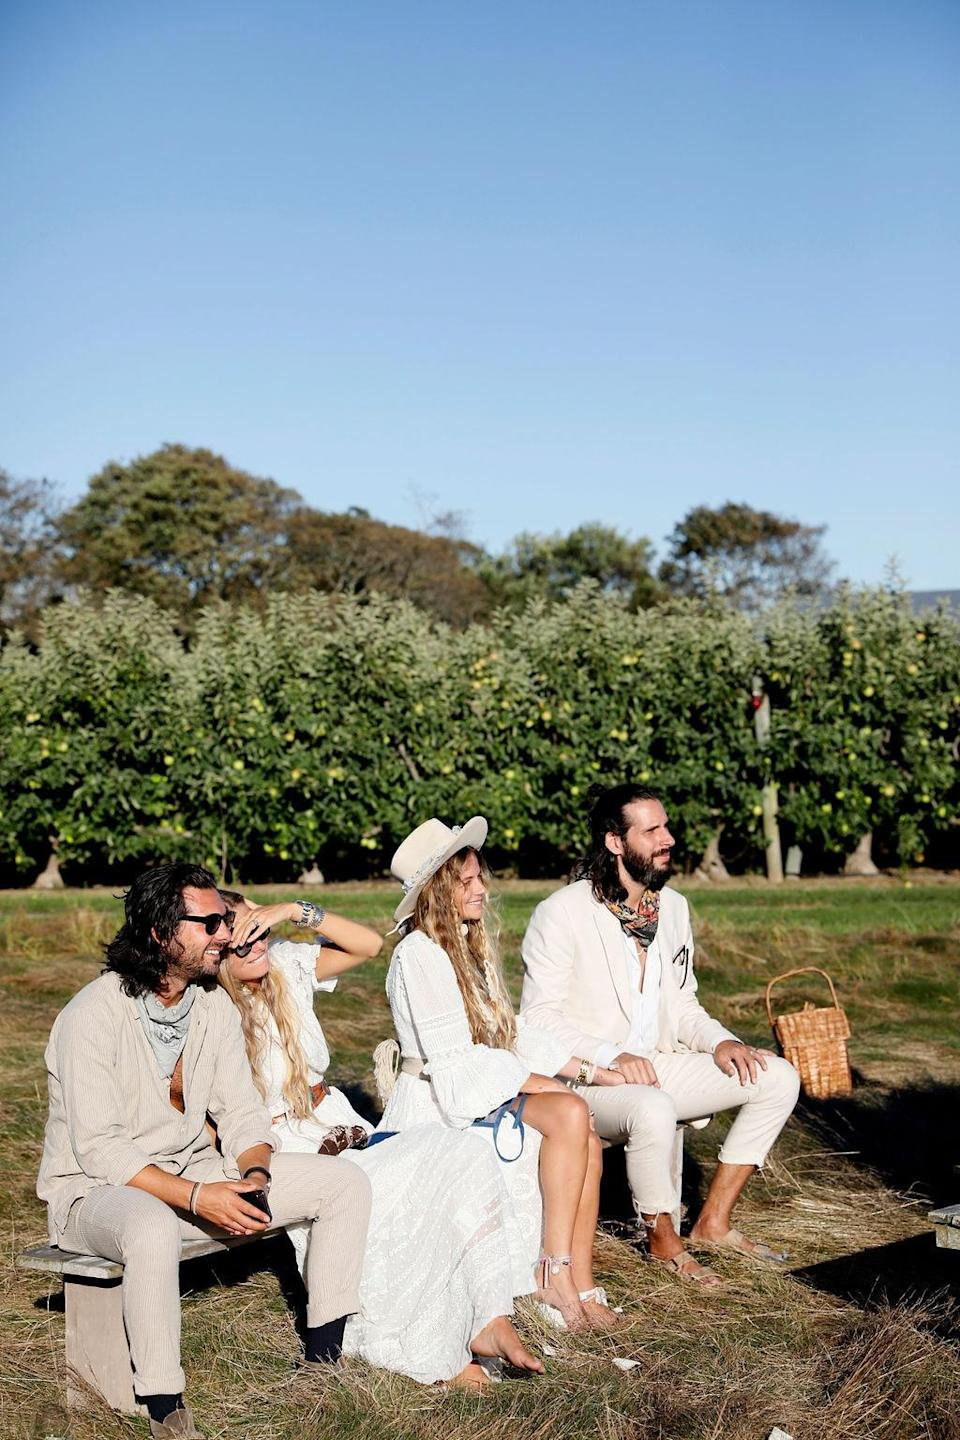 """""""Pamela Tick and her husband Ryan, along with Christina Coniglio and husband Adam Silverstein shield their eyes from the bright summer sun,"""" Dean says. """"The night before, Rebecca and the girls were sharing old vintage Ralph Lauren campaign photos from the early 90s for wedding inspiration after our small family pre-rehearsal dinner."""""""